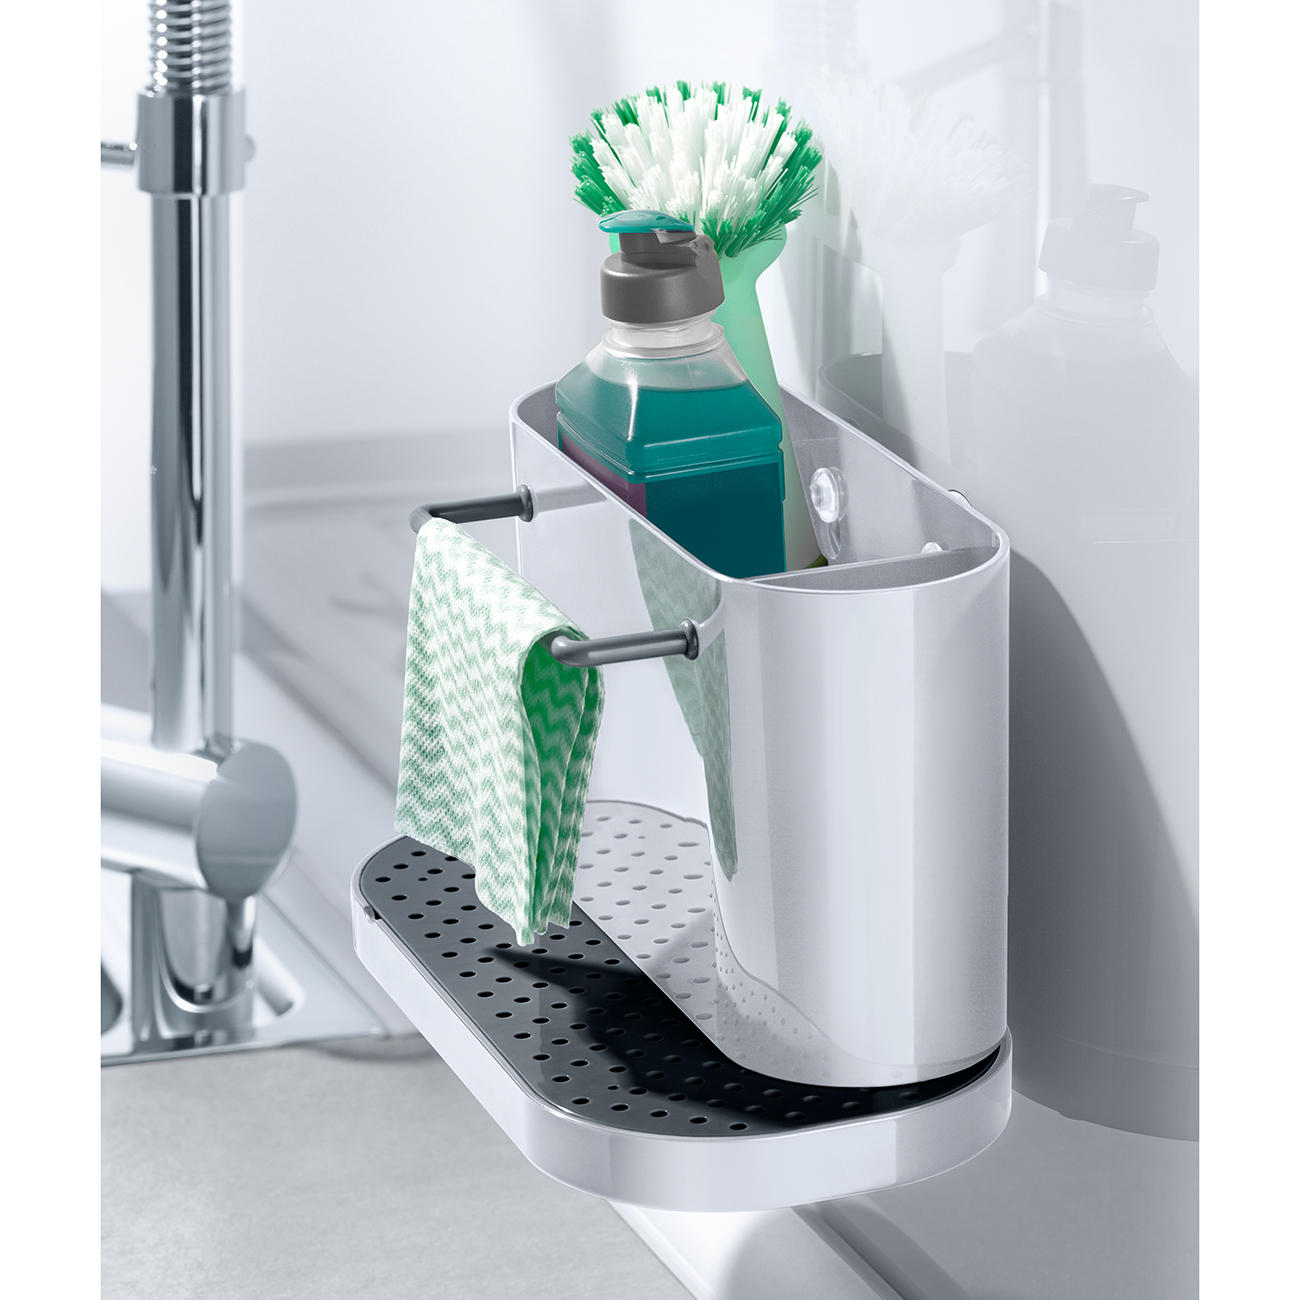 Sink Caddy 3 Year Product Guarantee